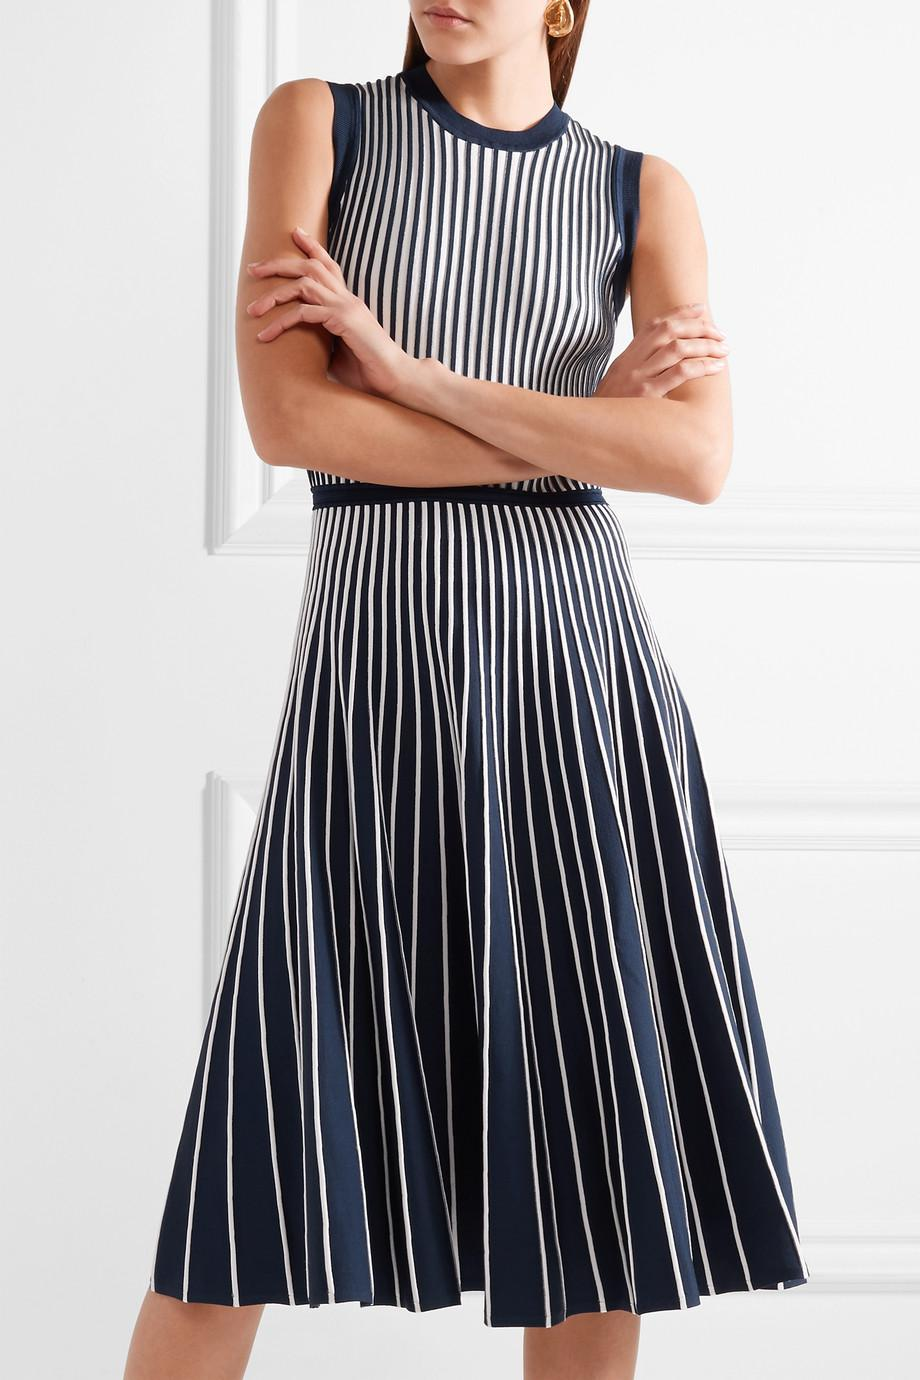 Two-tone Stretch-knit Dress - Navy Jason Wu Cheap Footlocker Sale Get Authentic Footlocker Pictures Cheap Price Buy Cheap Really Limited Edition Cheap Online wHbfRwKK61